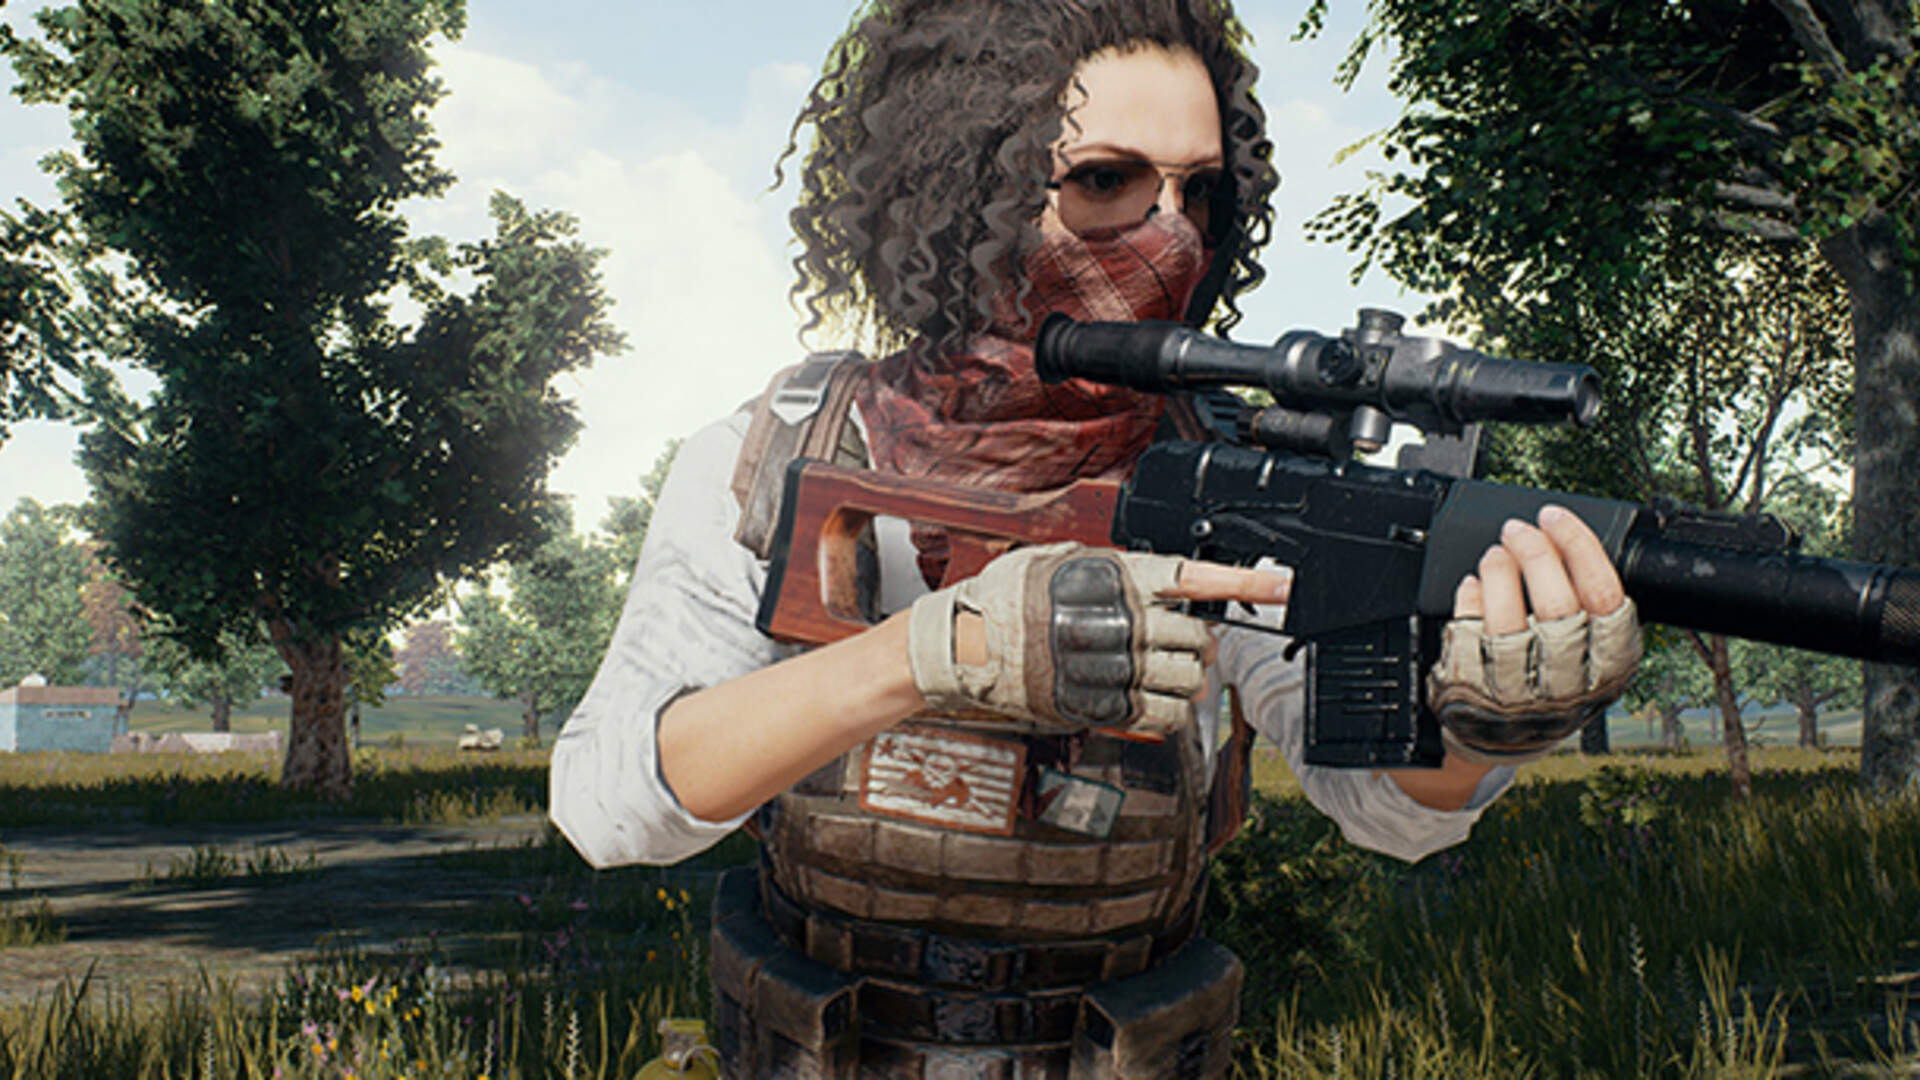 PUBG Is Looking To Destiny's Aim Assist as an Influence for Helping Cross-Platform Play